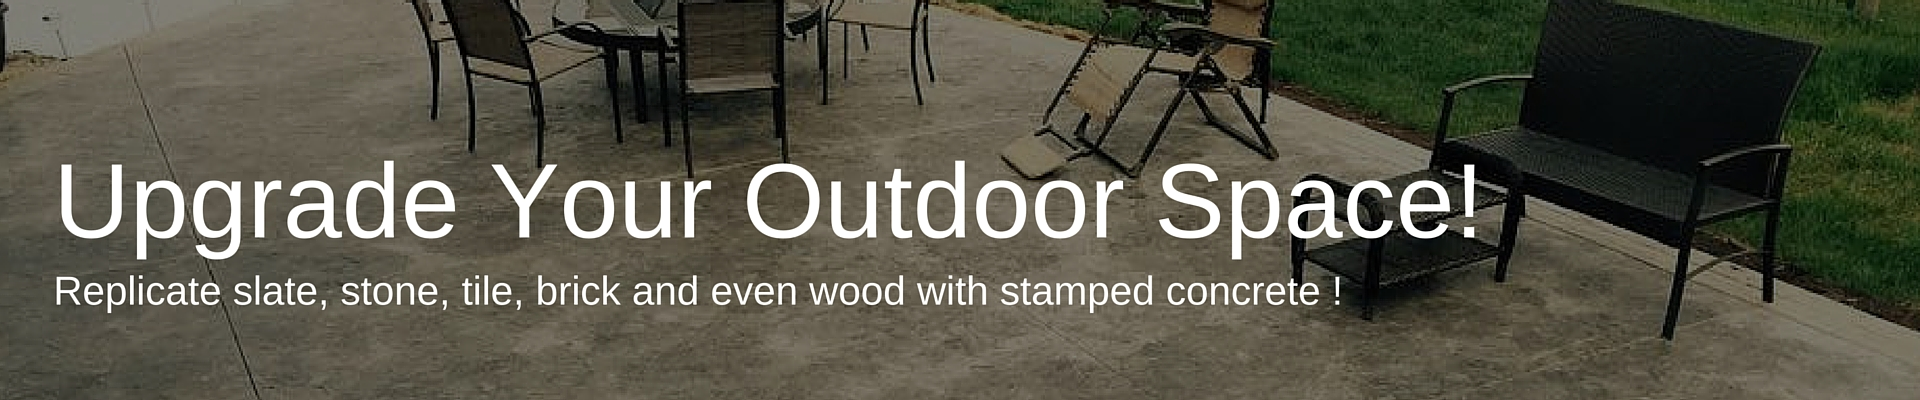 Upgrade Your Outdoor Space in Cold Lake with Stamped Concrete